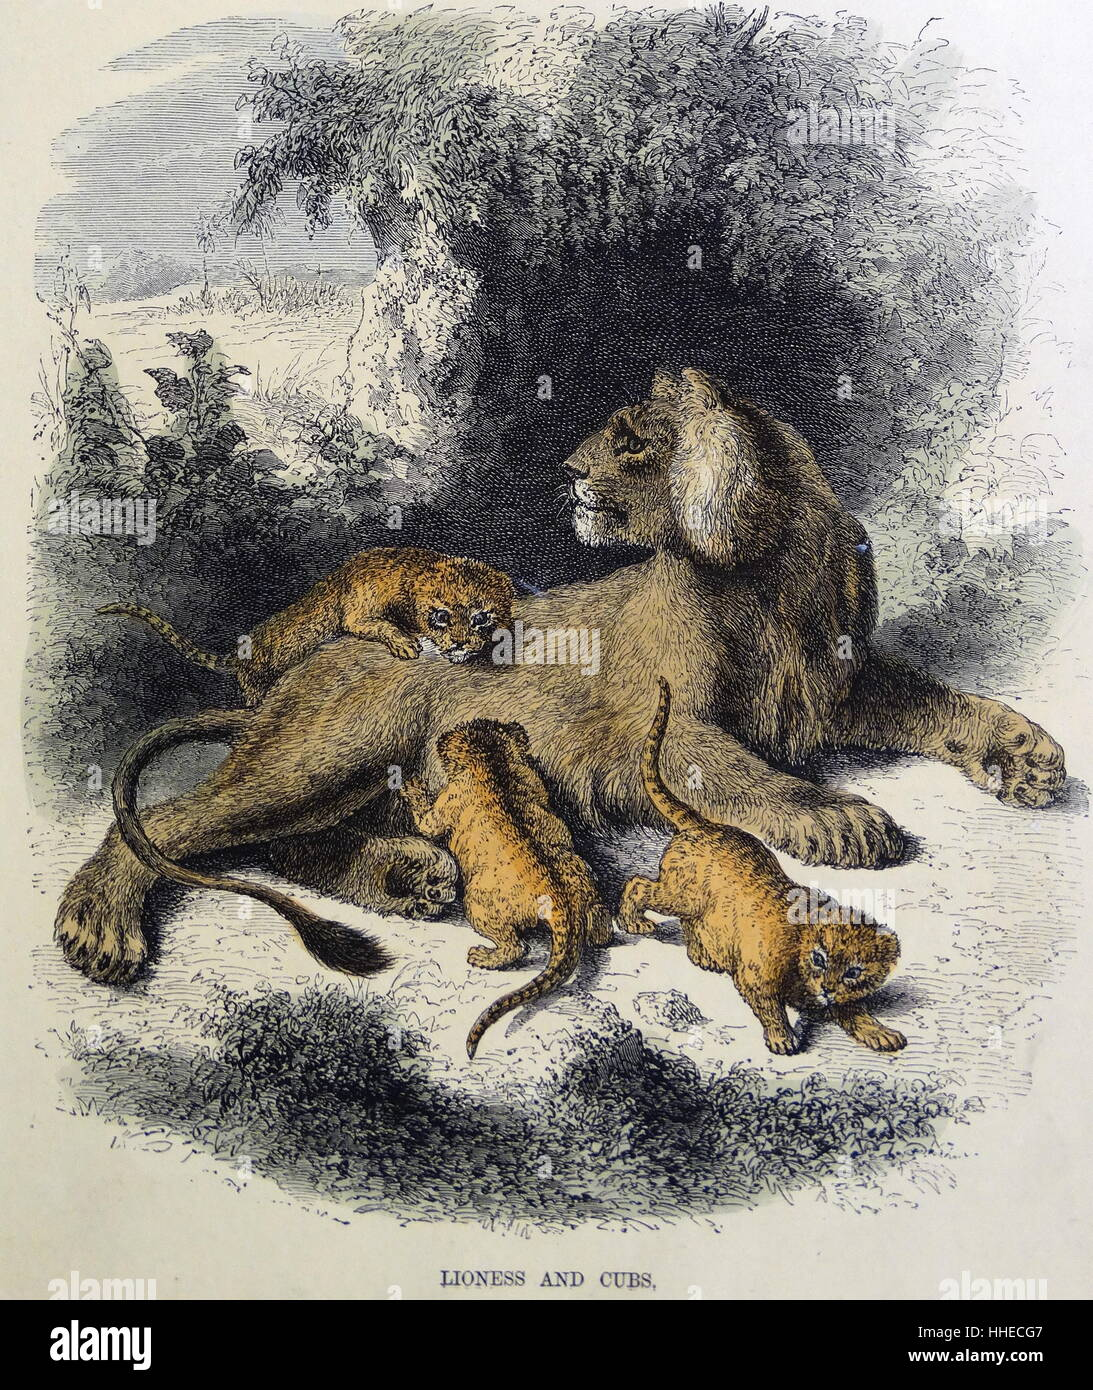 Lioness and cubs. Hand-tinted engraving circa 1860 - Stock Image